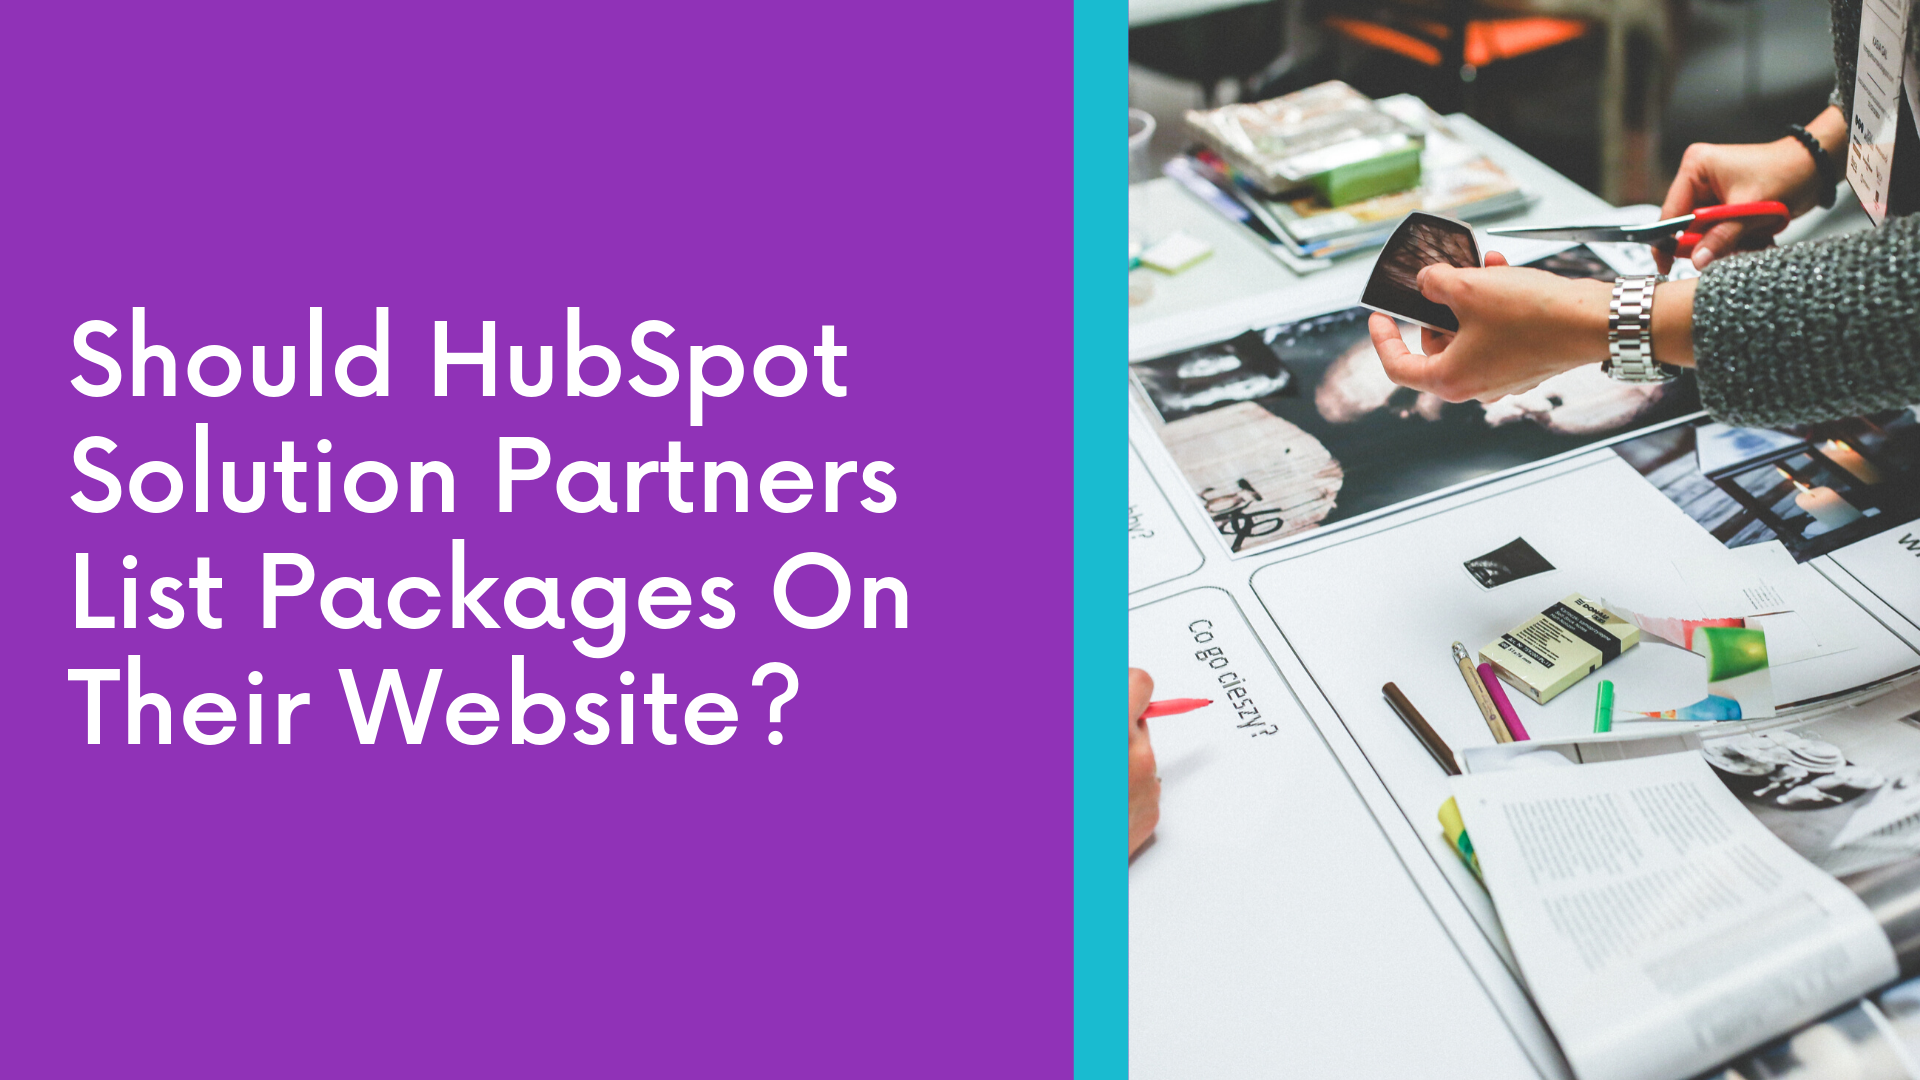 Should Hubspot Solution Partners List Packages On Their Website?